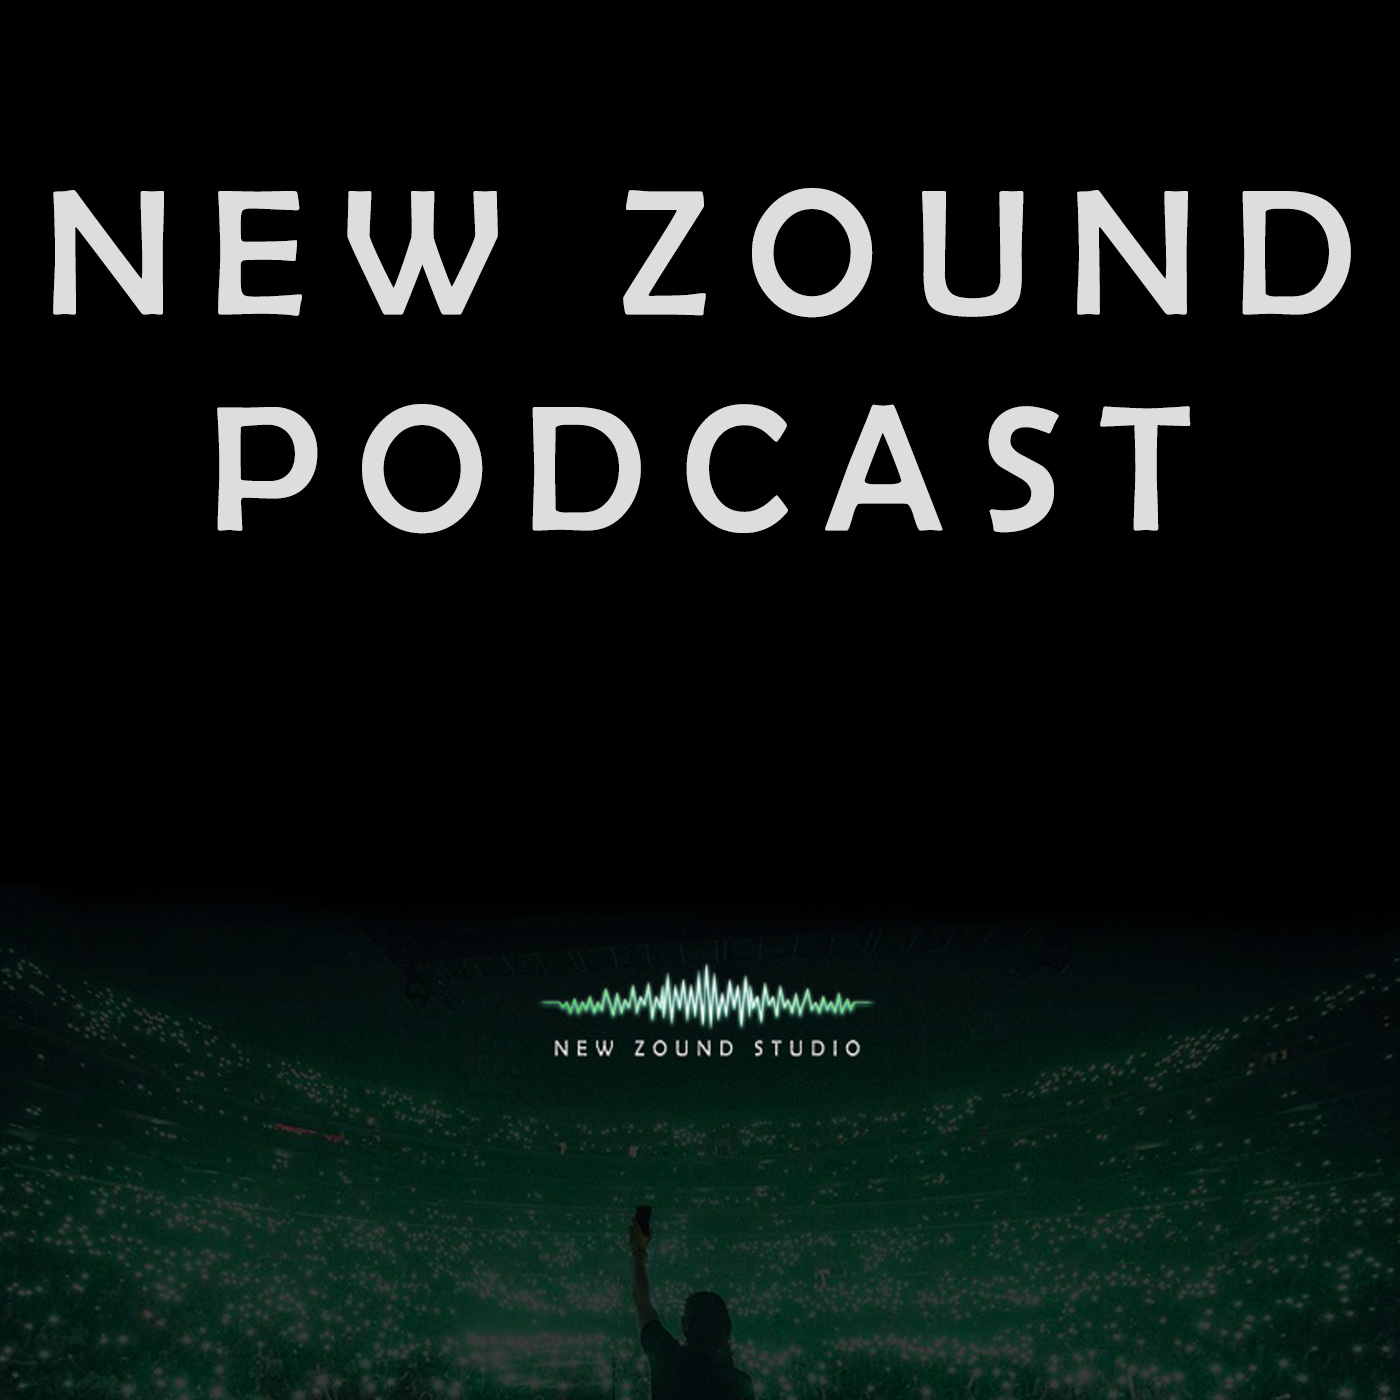 New Zound Podcast by New Zound Studio on Apple Podcasts 80cd714990